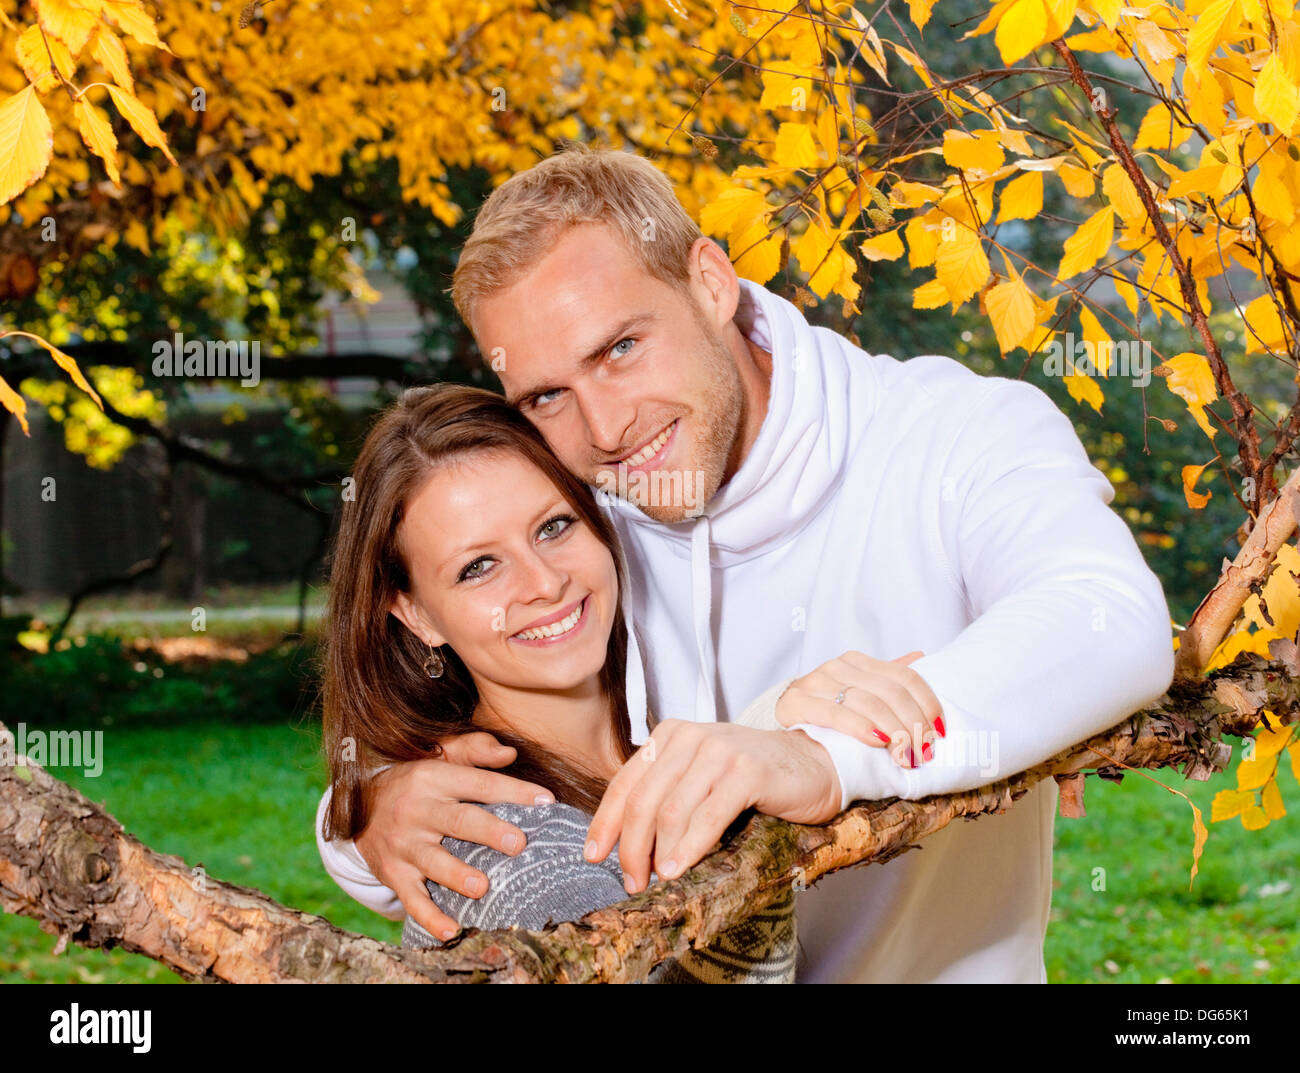 portrait of a happy young couple in the park, smiling. - Stock Image